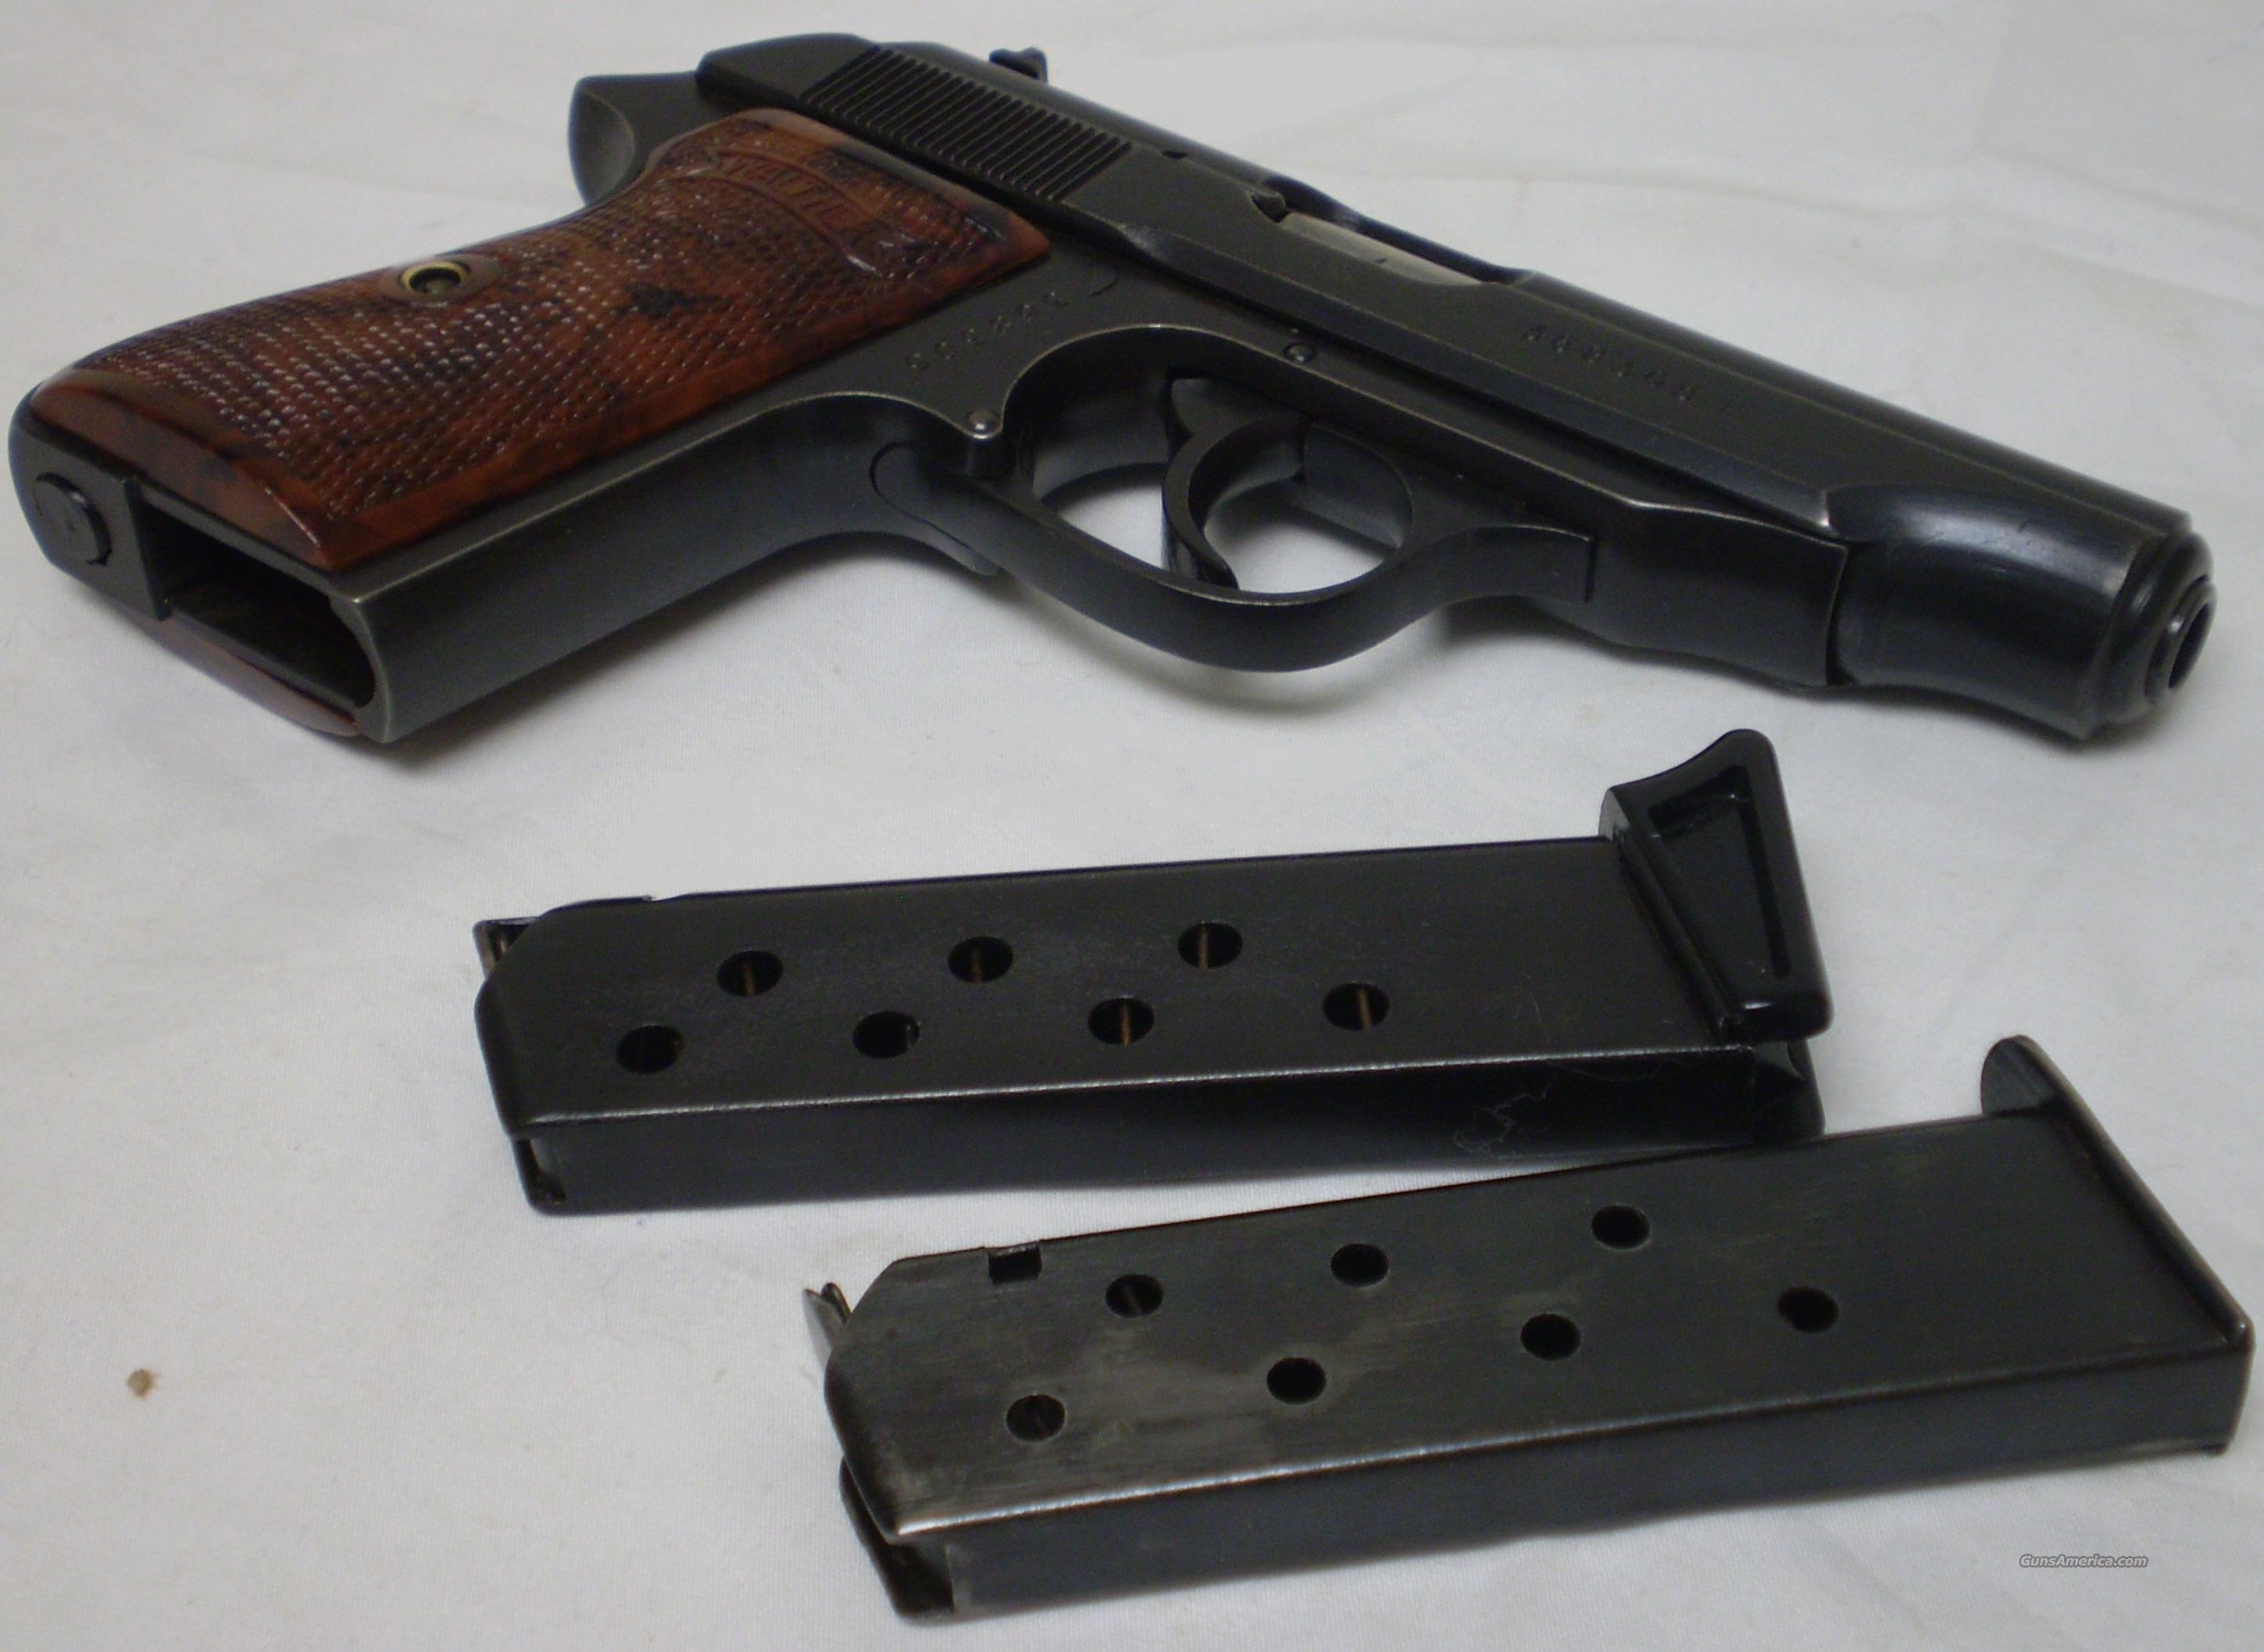 WW2 Walther PP 7.65 German w/clips  Guns > Pistols > Walther Pistols > Pre-1945 > PP